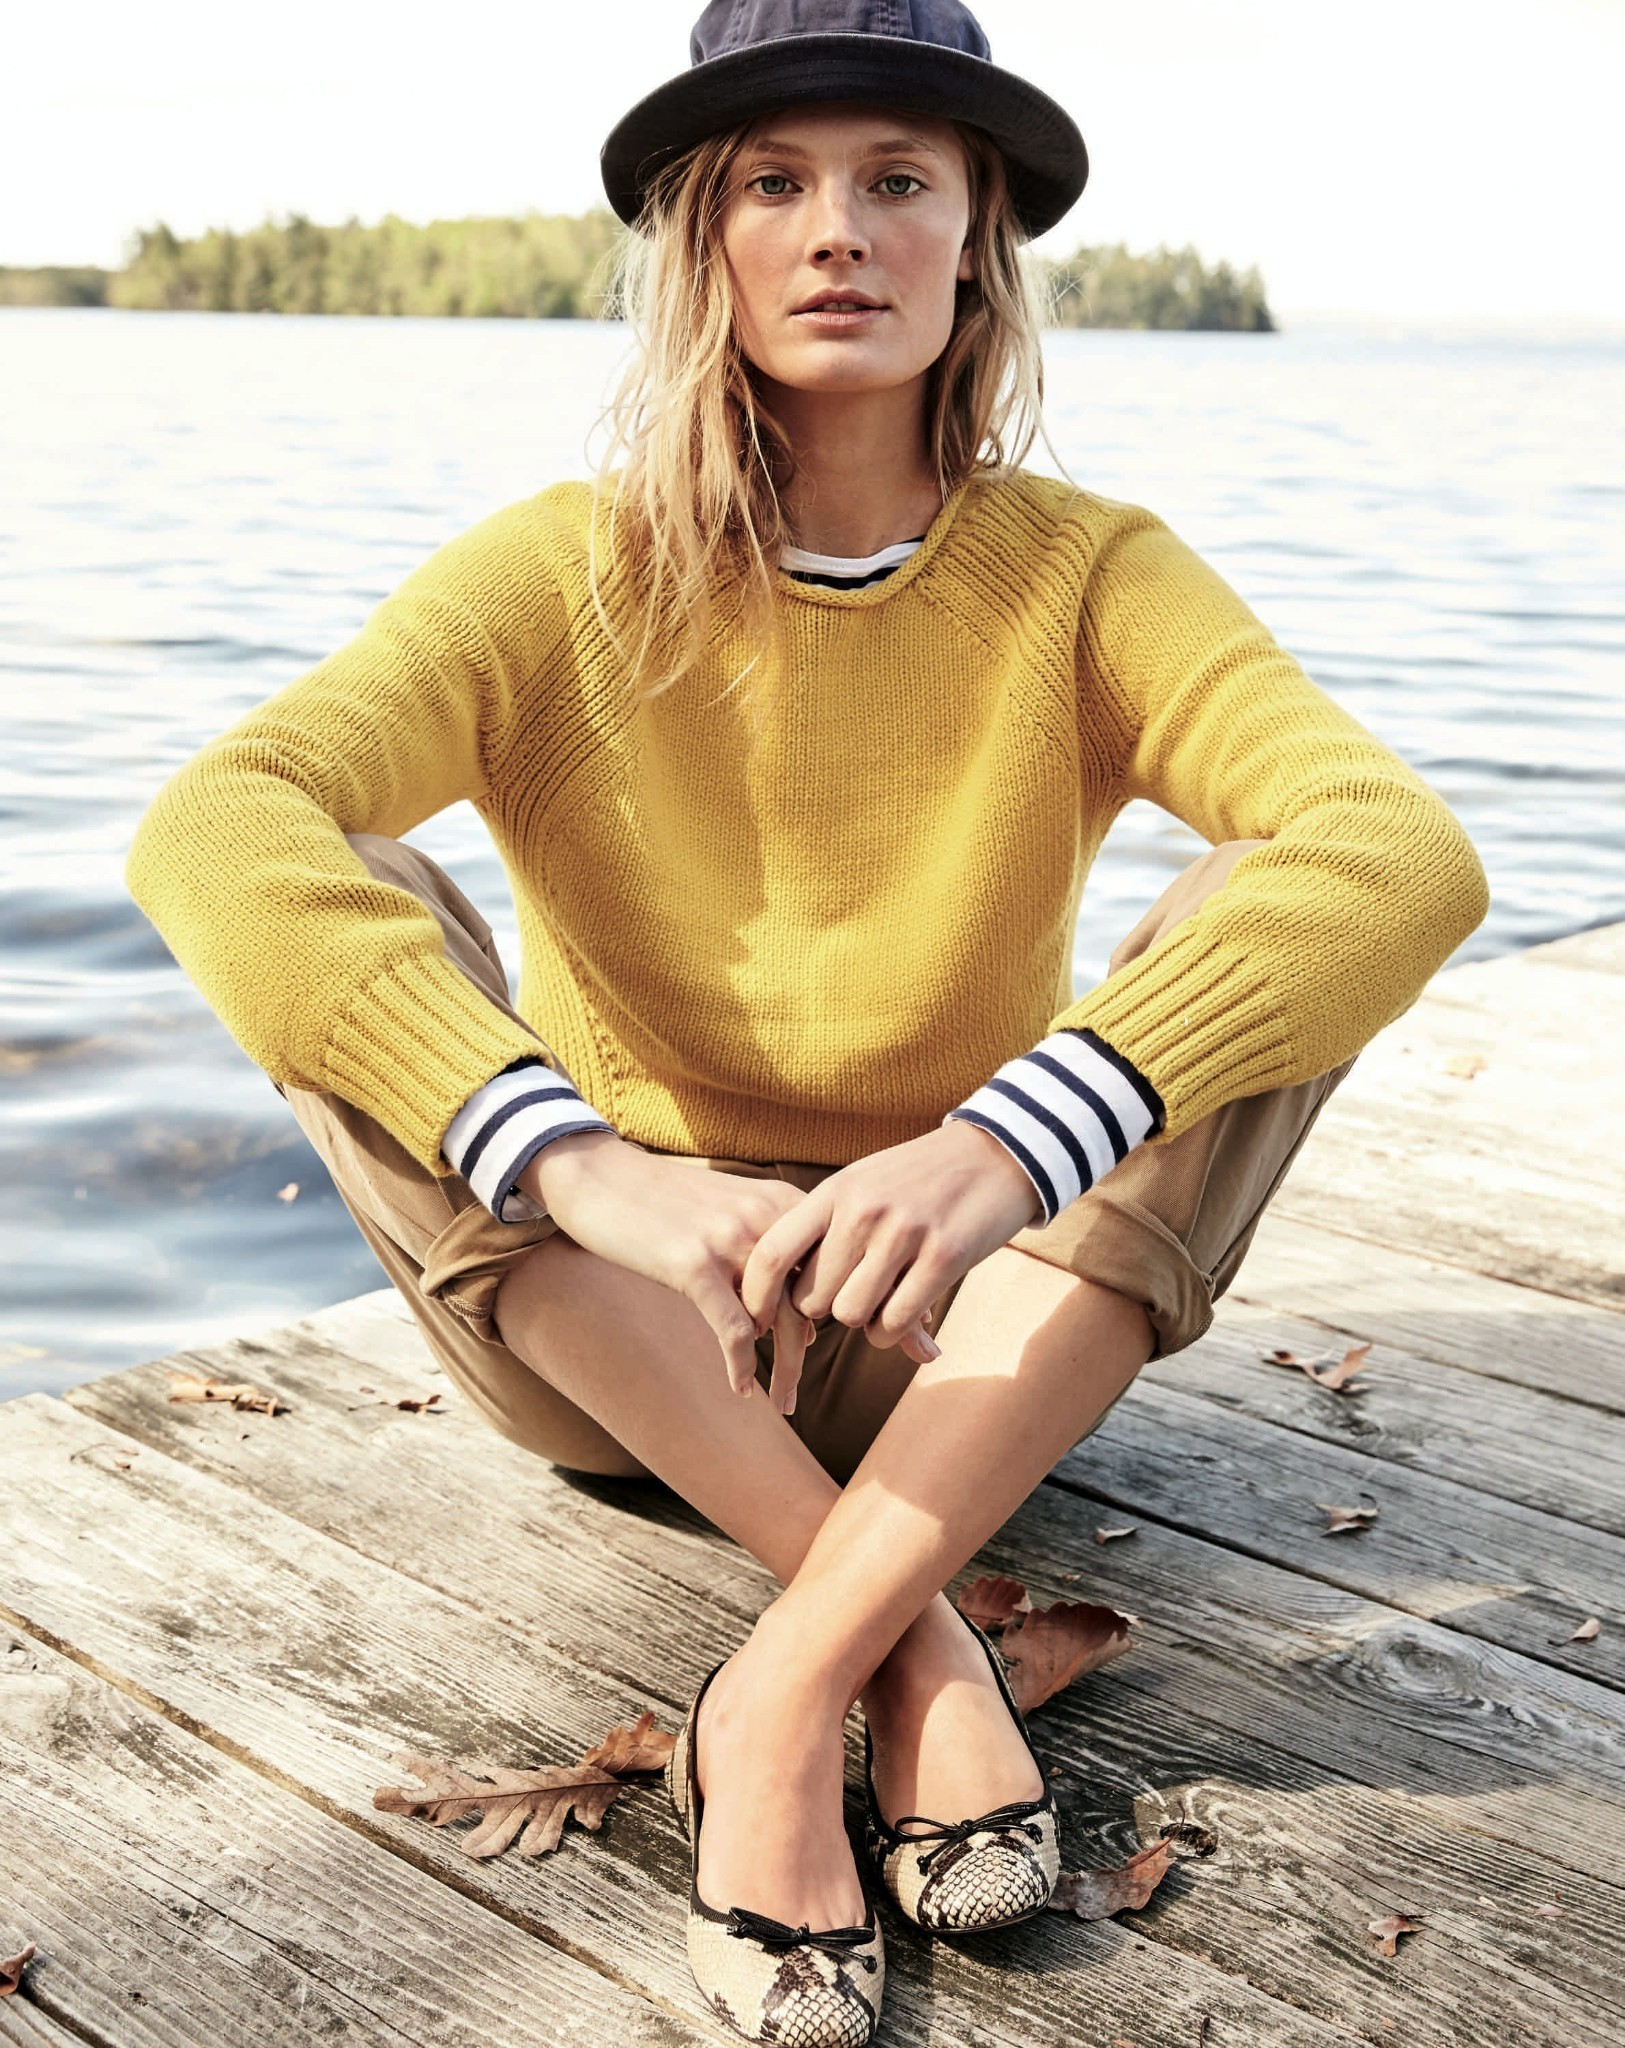 J.Crew's Head Stylist on Reissues, Nostalgia, and the Shirt That's Making a Big Comeback